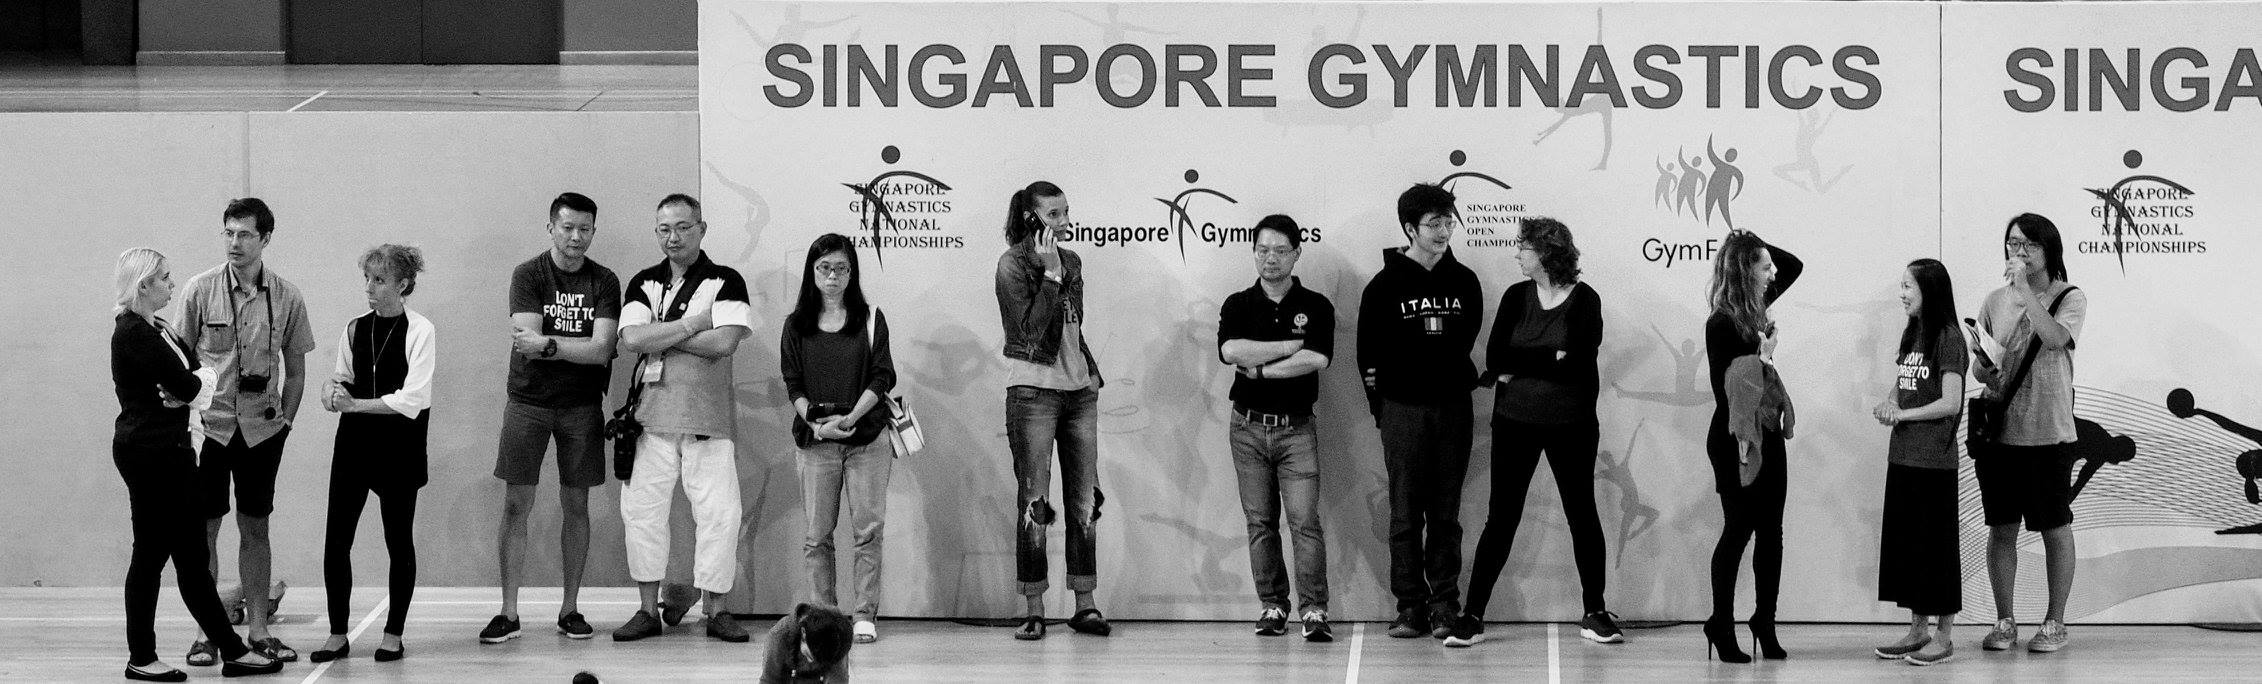 Singapore Gymnastics Open Local Event 2017 27